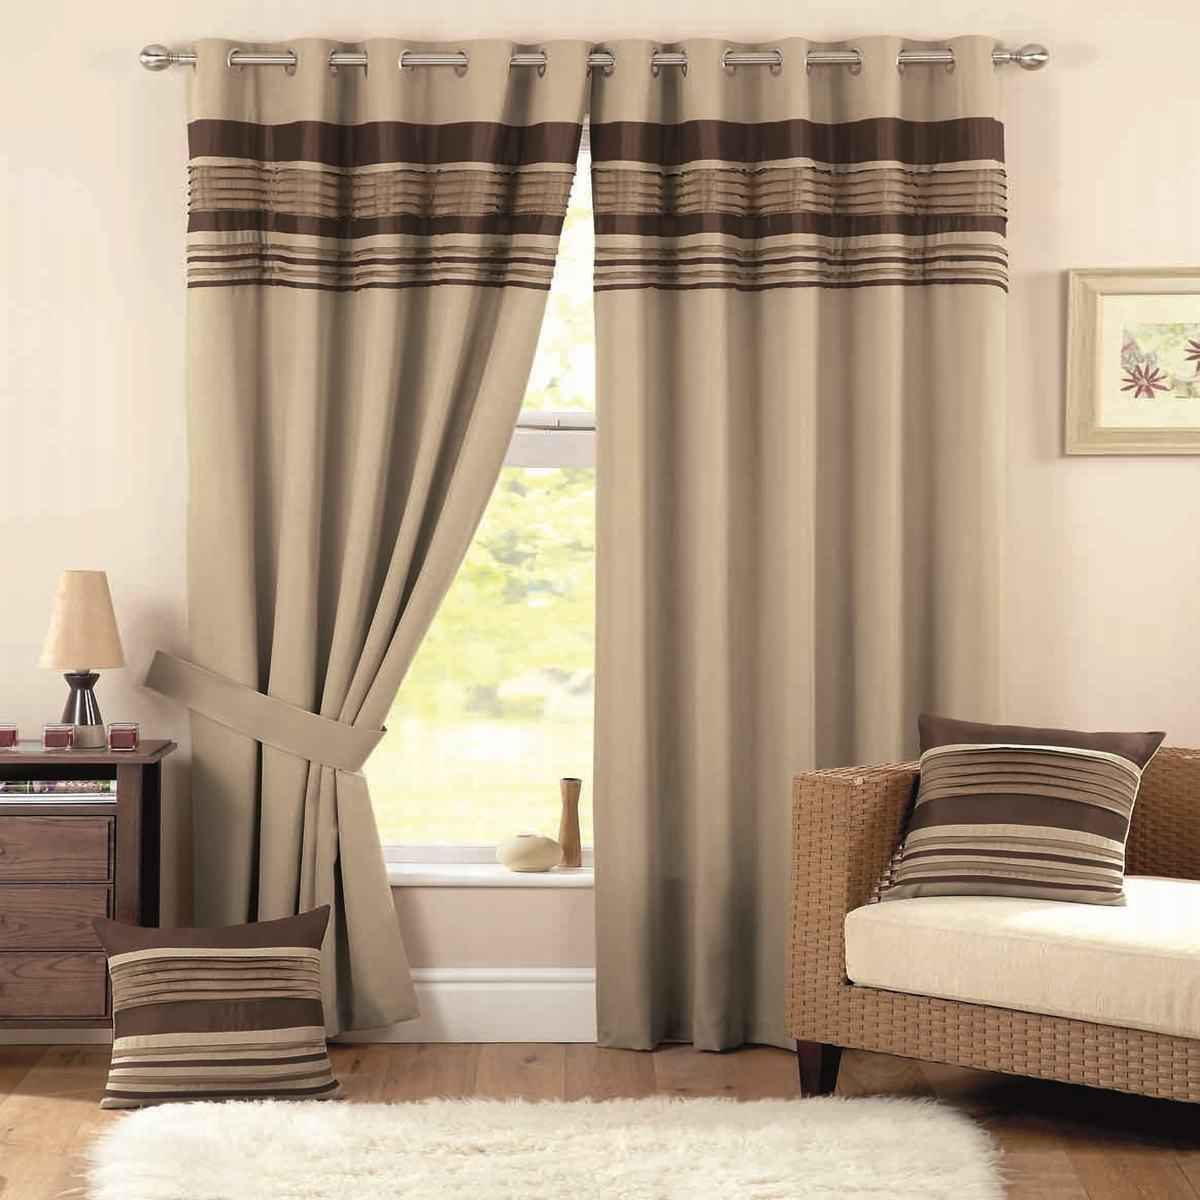 cheap curtains and drapes ideas. Black Bedroom Furniture Sets. Home Design Ideas